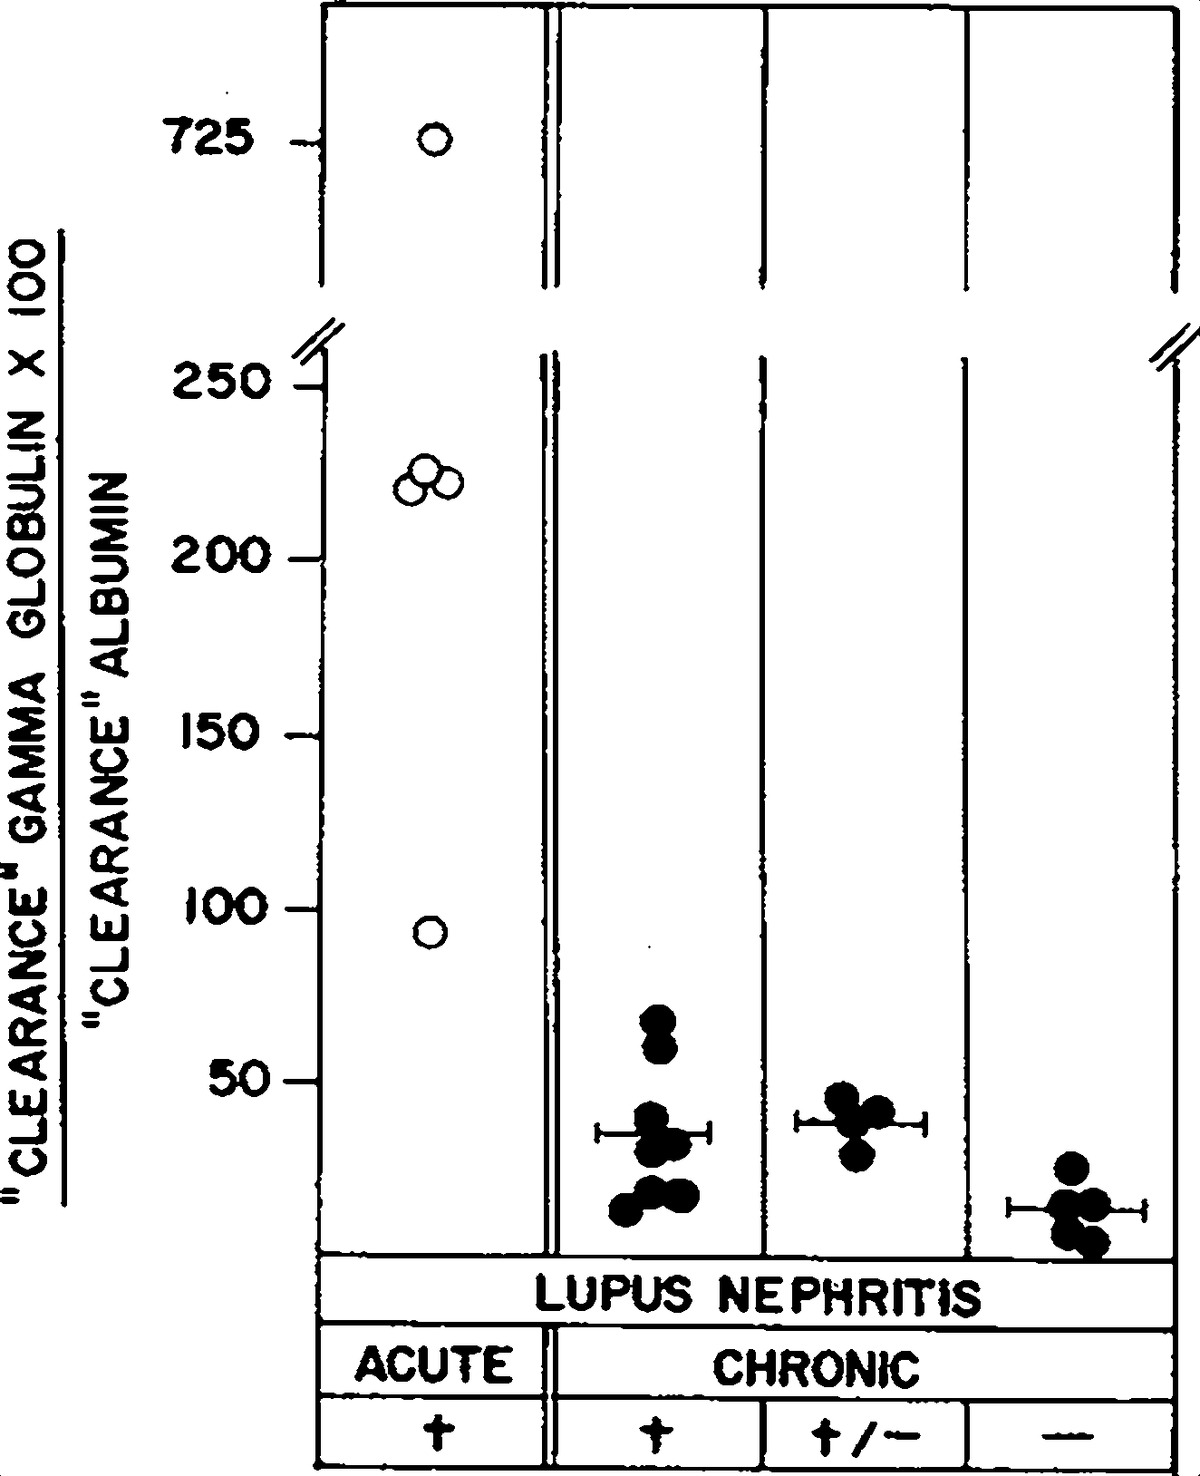 Significance of urinary gamma globulin in lupus nephritis figure 3 relation of clearance ratio to the stage and activity of lupus nephritis symbols as in figure 1 biocorpaavc